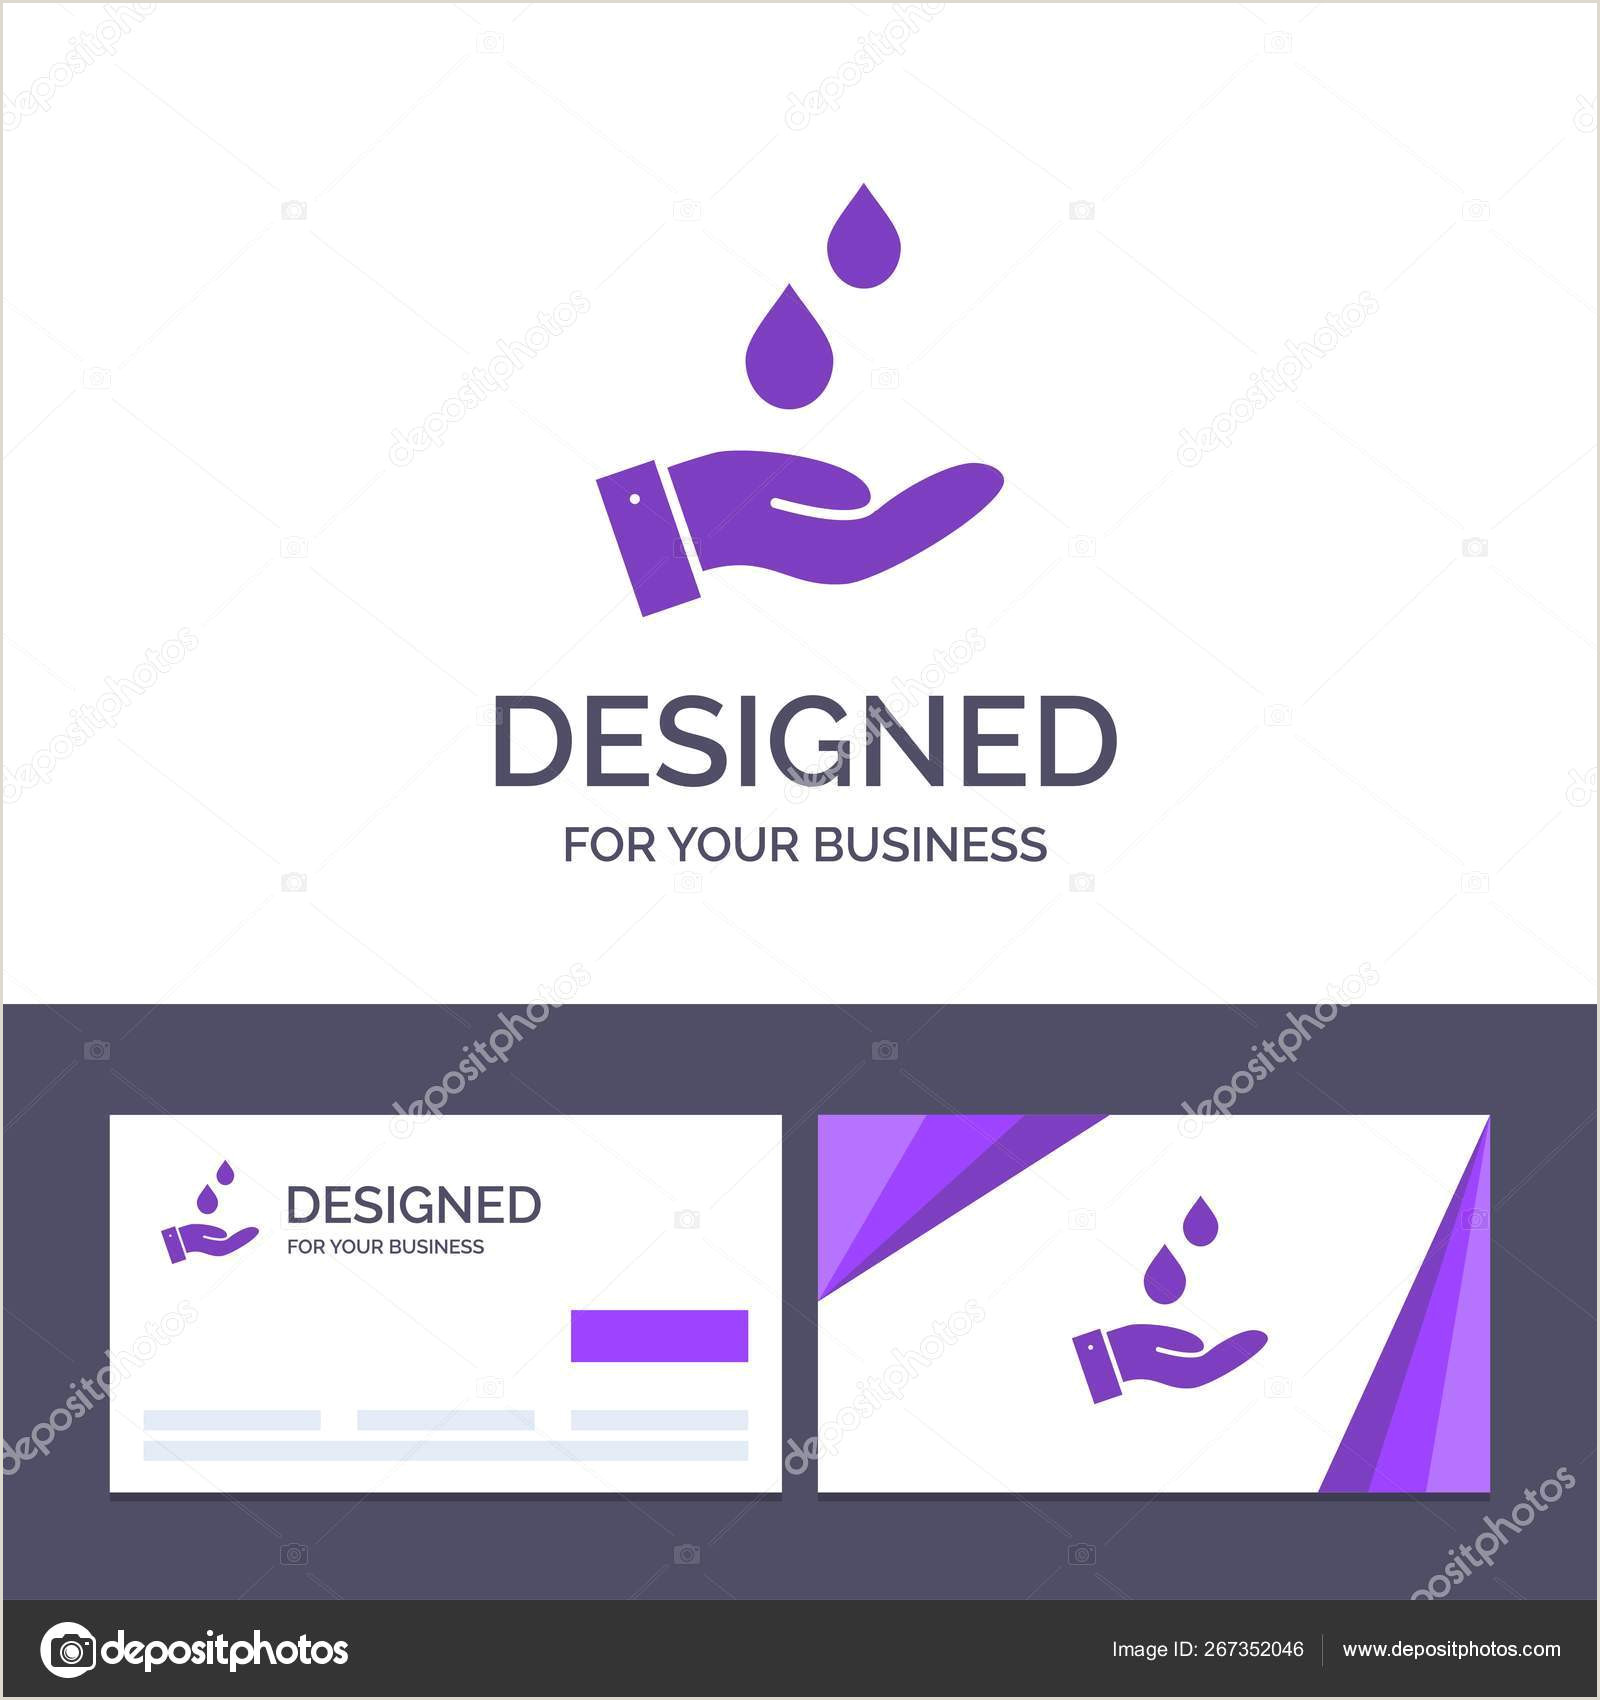 Business Cards Beautiful Unique Nature Water Creative Business Card And Logo Template Purified Water Energy